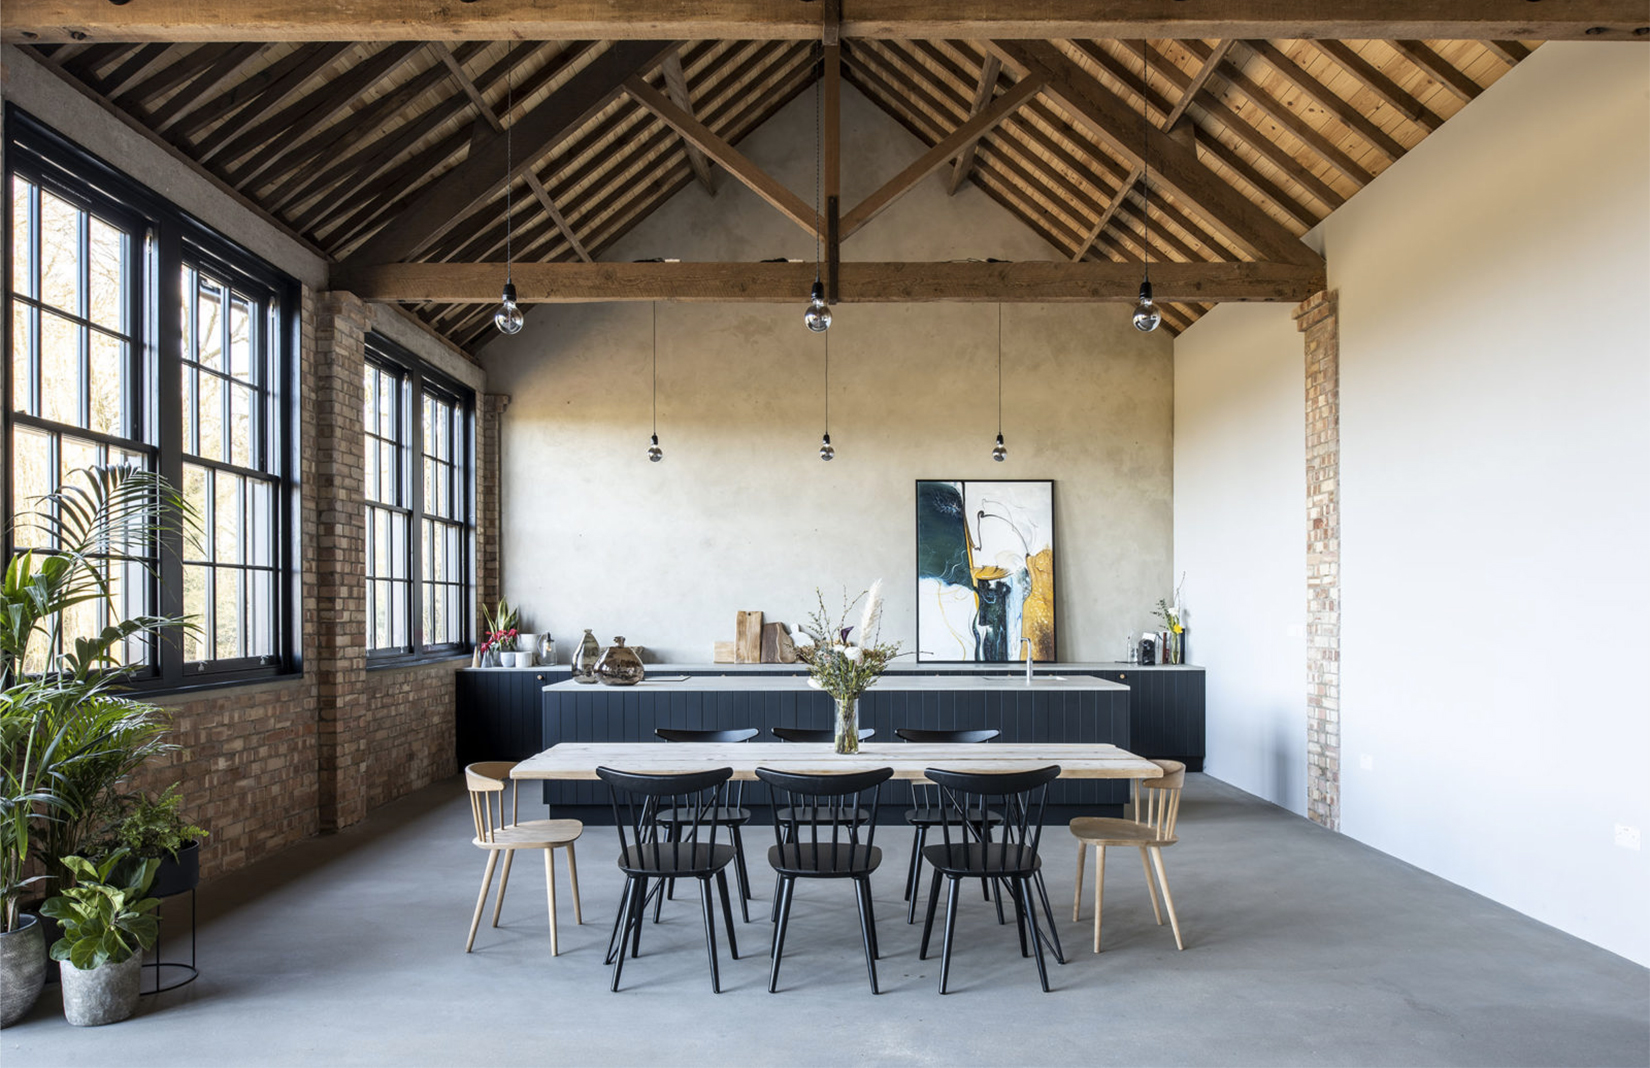 Masterfully converted in the Suffolk Countryside is this former diary barn which features trussed ceilings, bricks and concrete floors